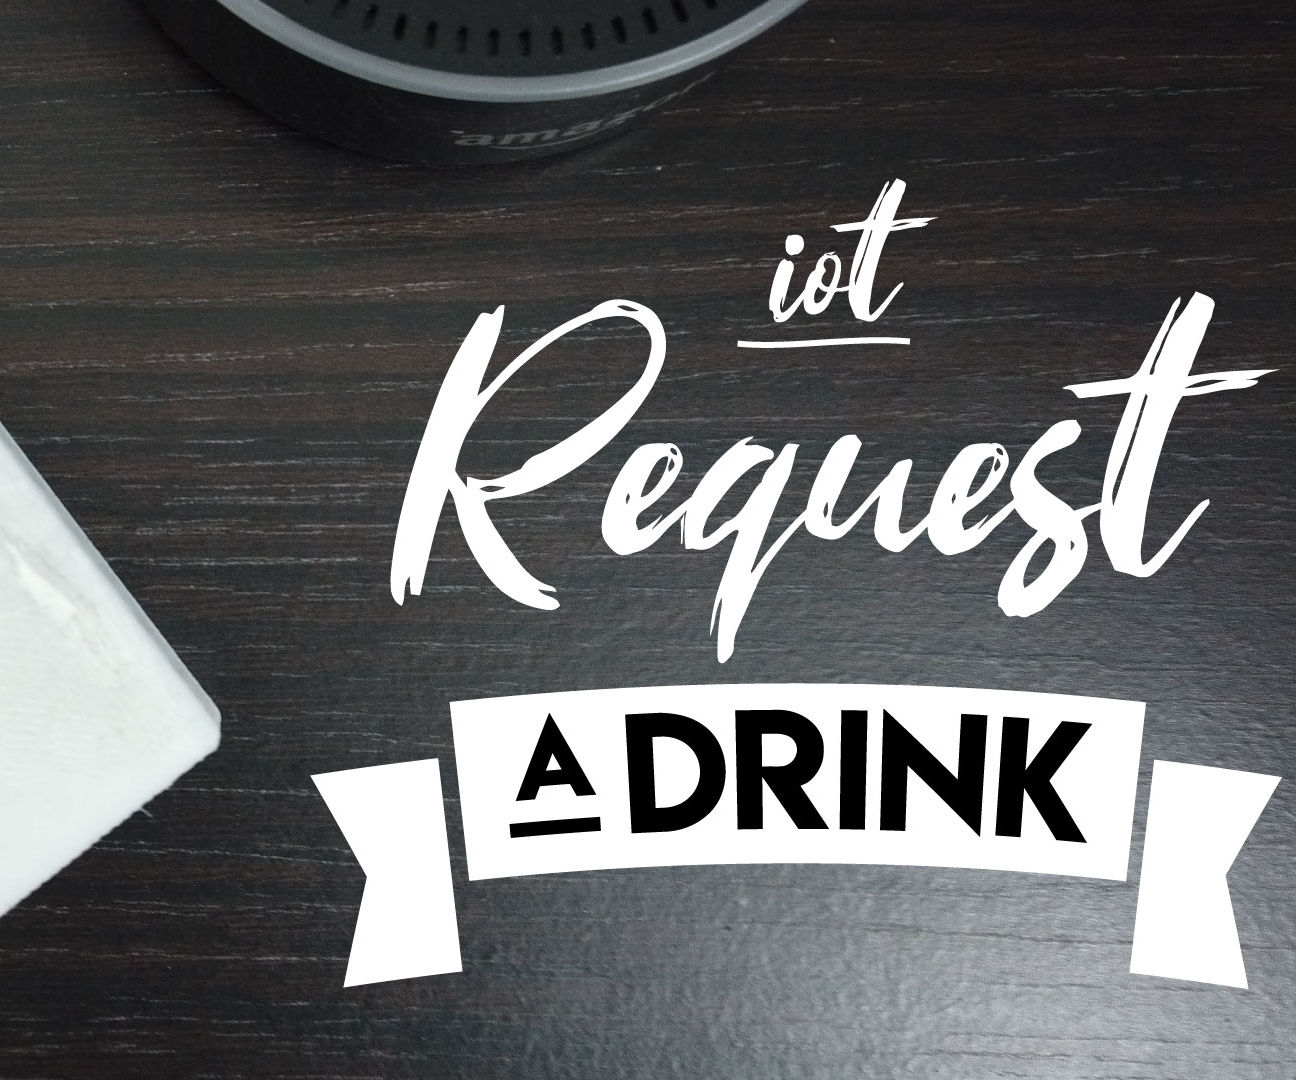 Request a Drink (IoT Push Button)